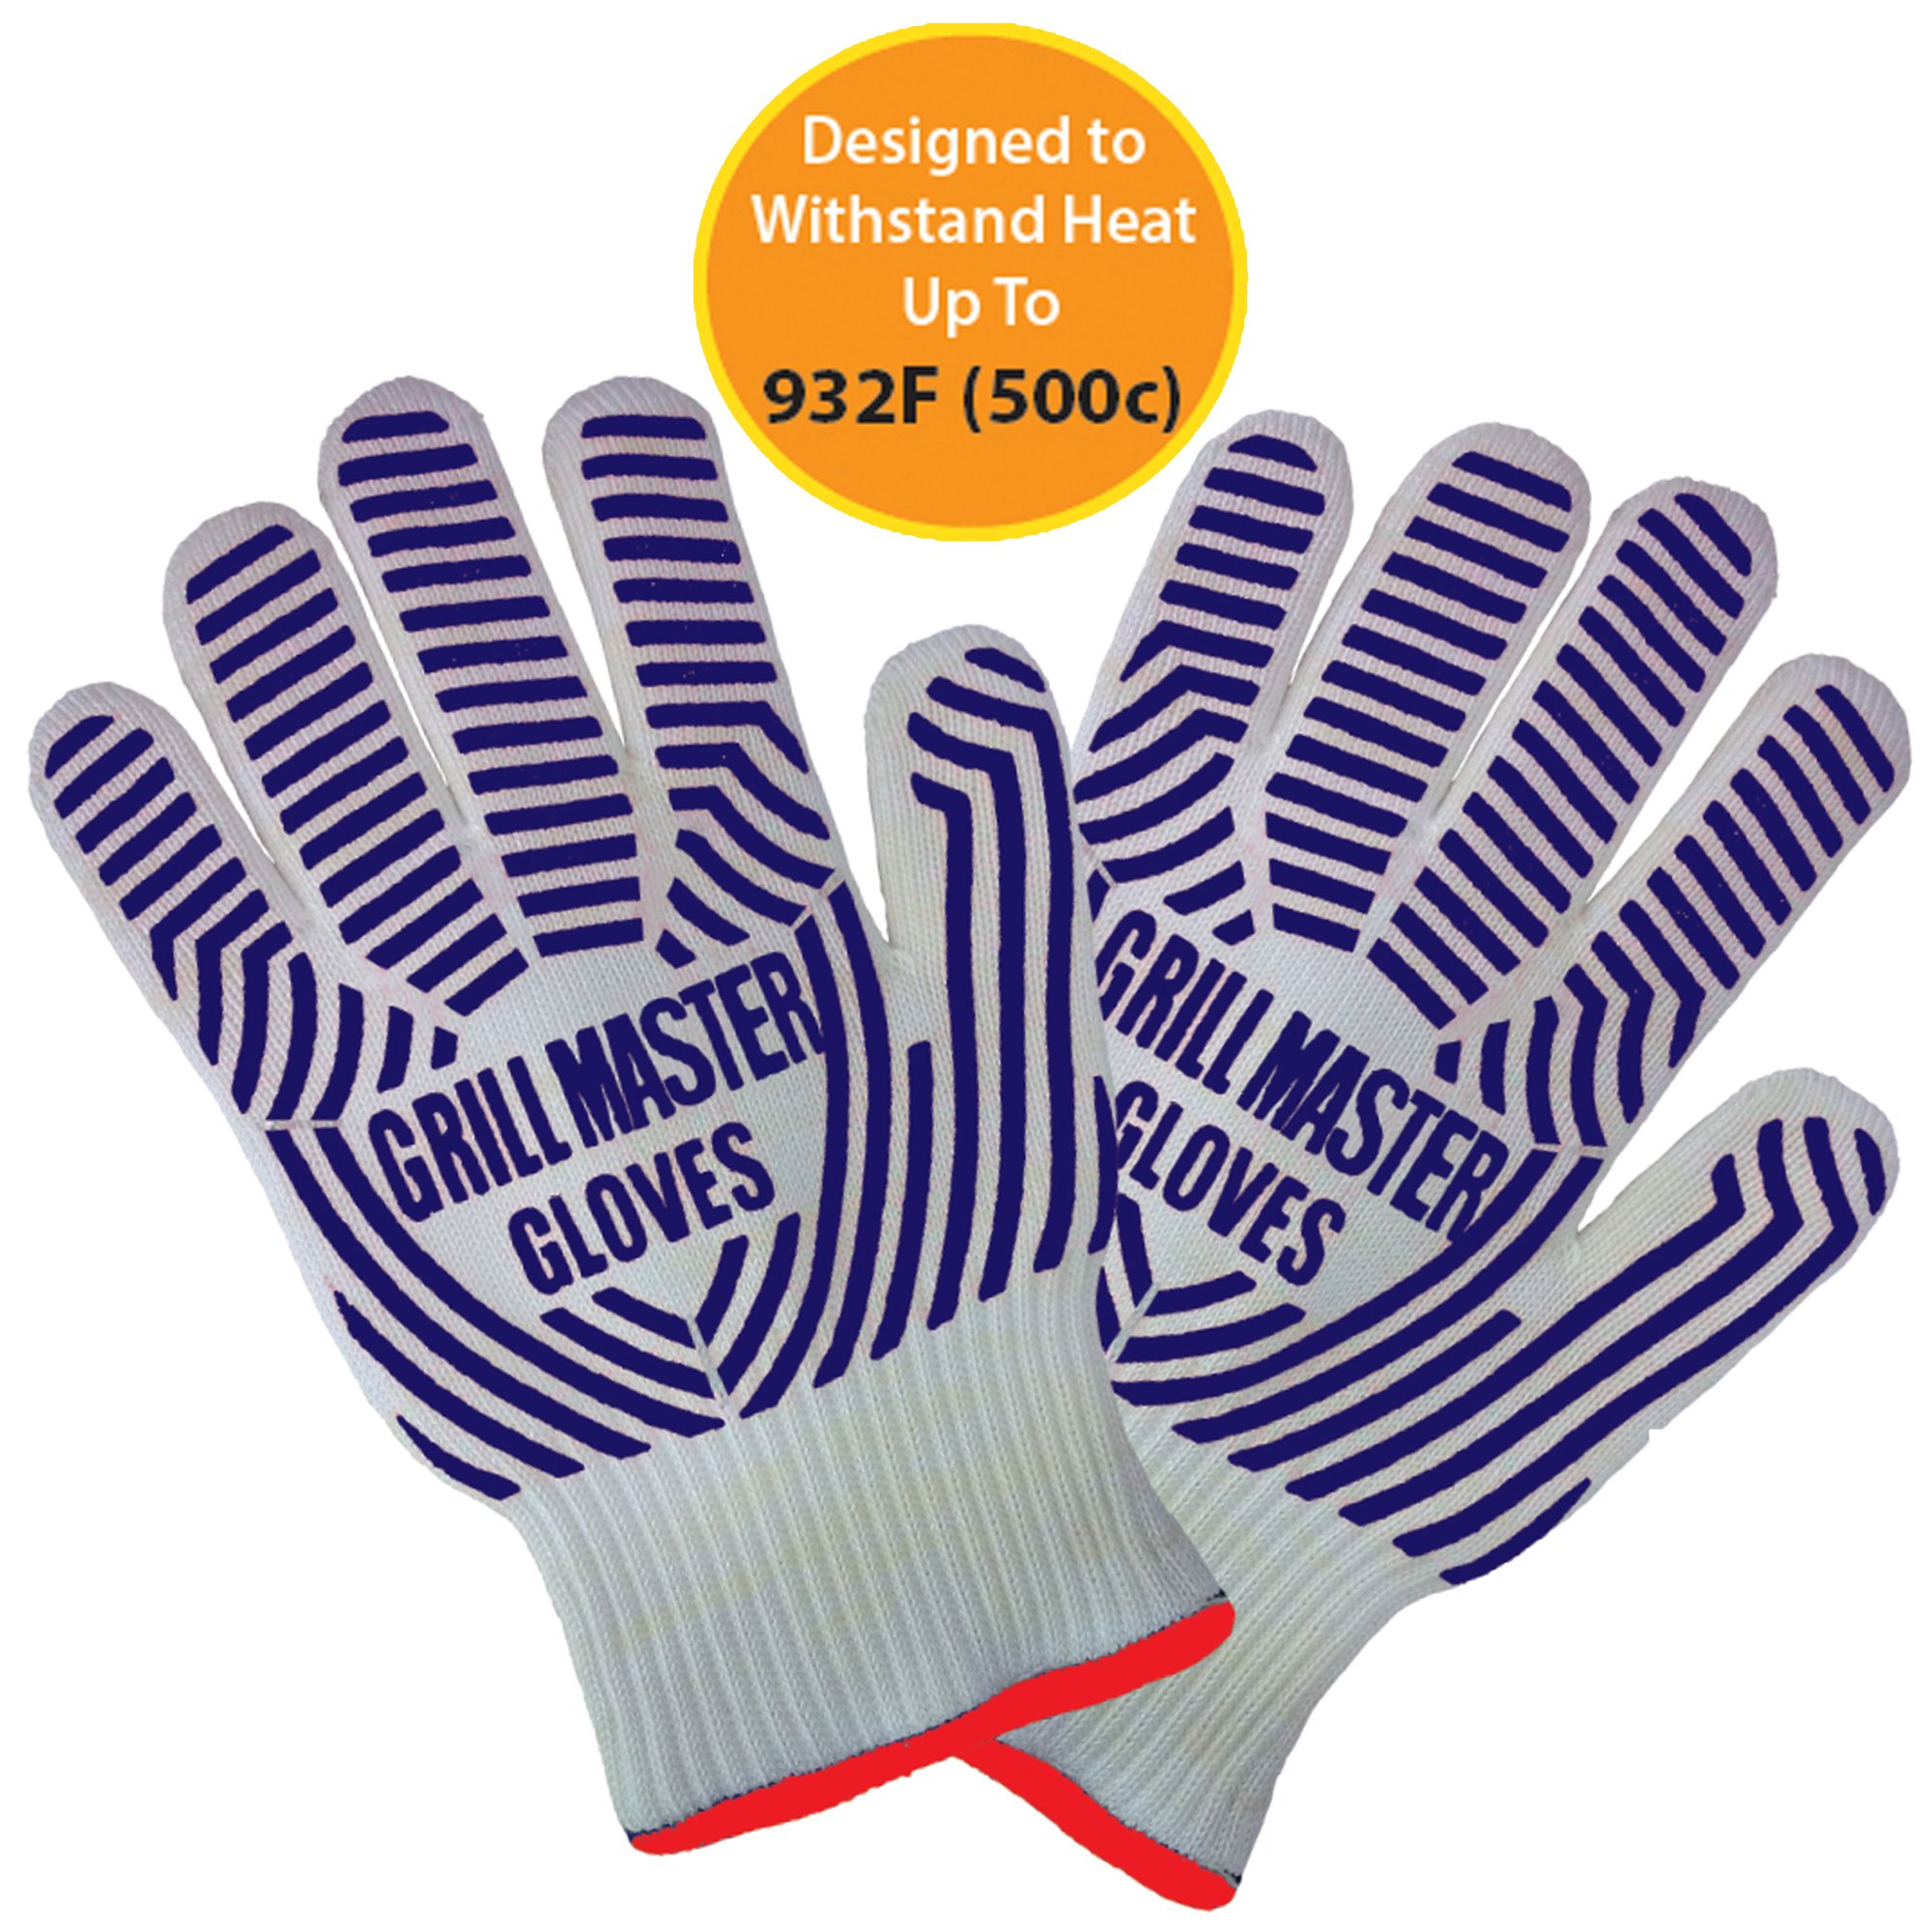 Grill Gloves Heat Resistant Extreme BBQ Gloves Oven Gloves Rated to 932f - Ideal Grilling Gloves by Grill Master (Black) by Grill Master Gloves (Image #1)